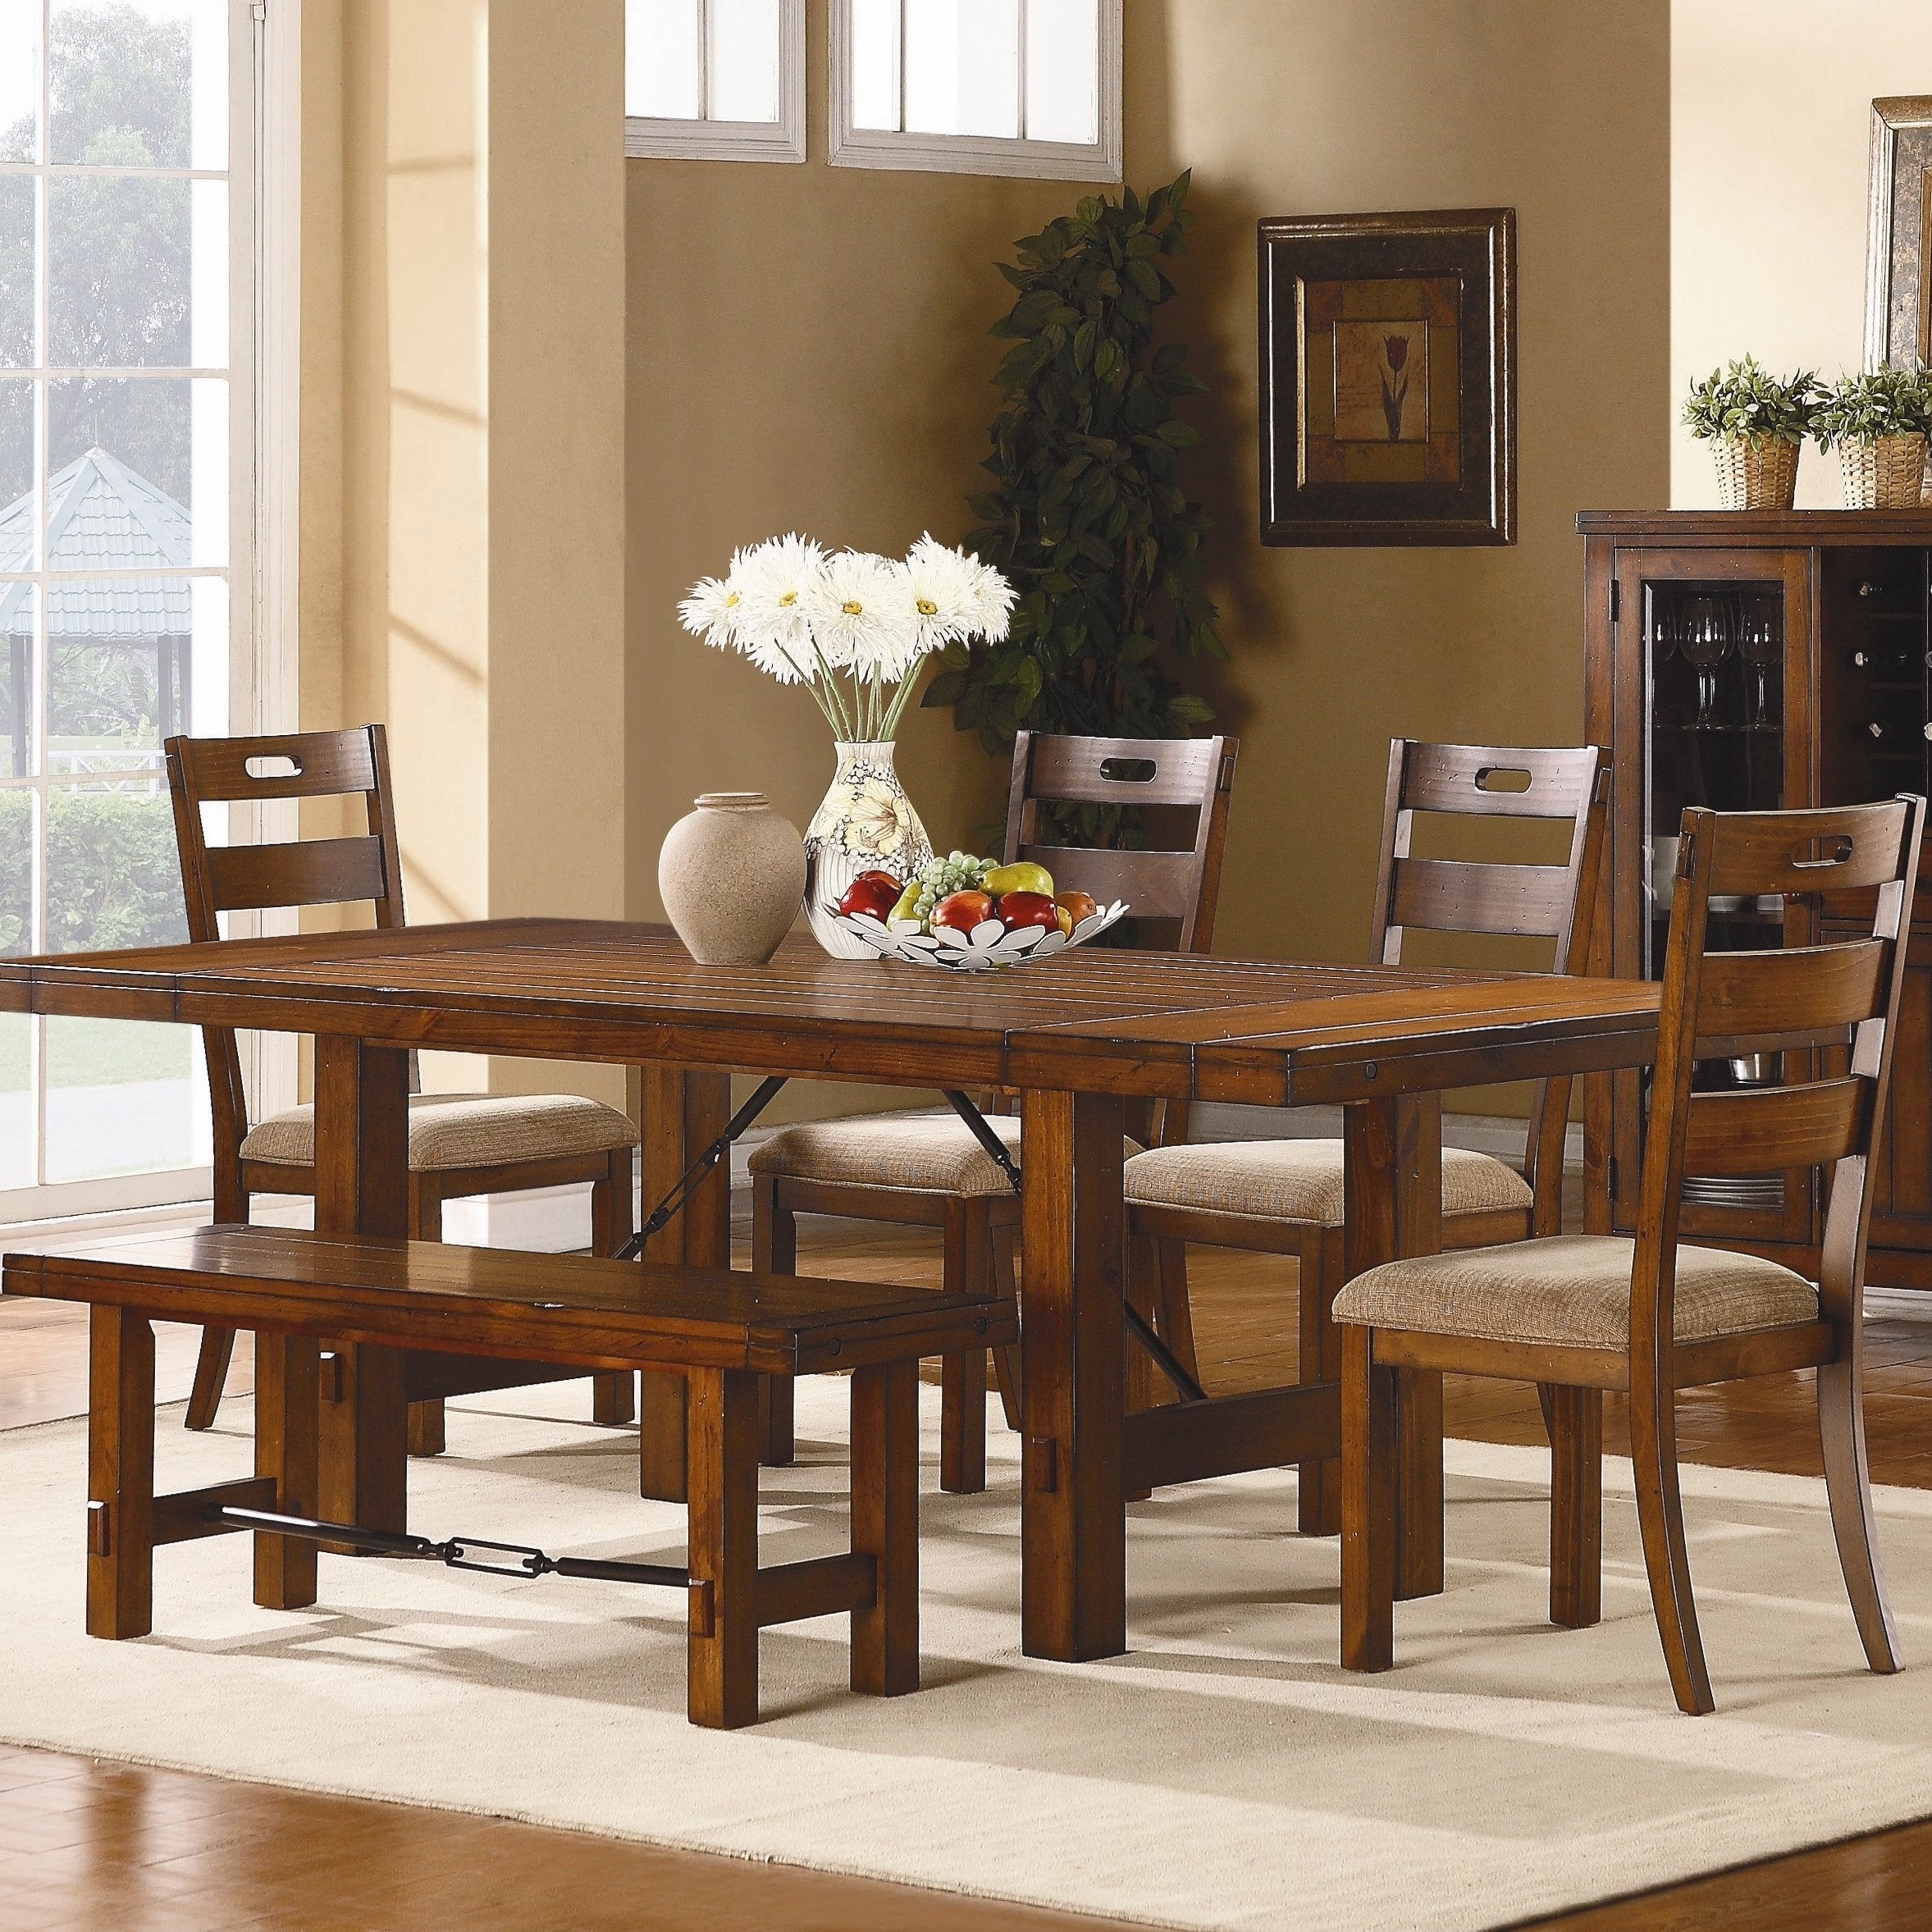 Loon Peak South Bross 6 Piece Dining Set & Reviews | Wayfair Inside Marbled Axton Sideboards (View 23 of 26)